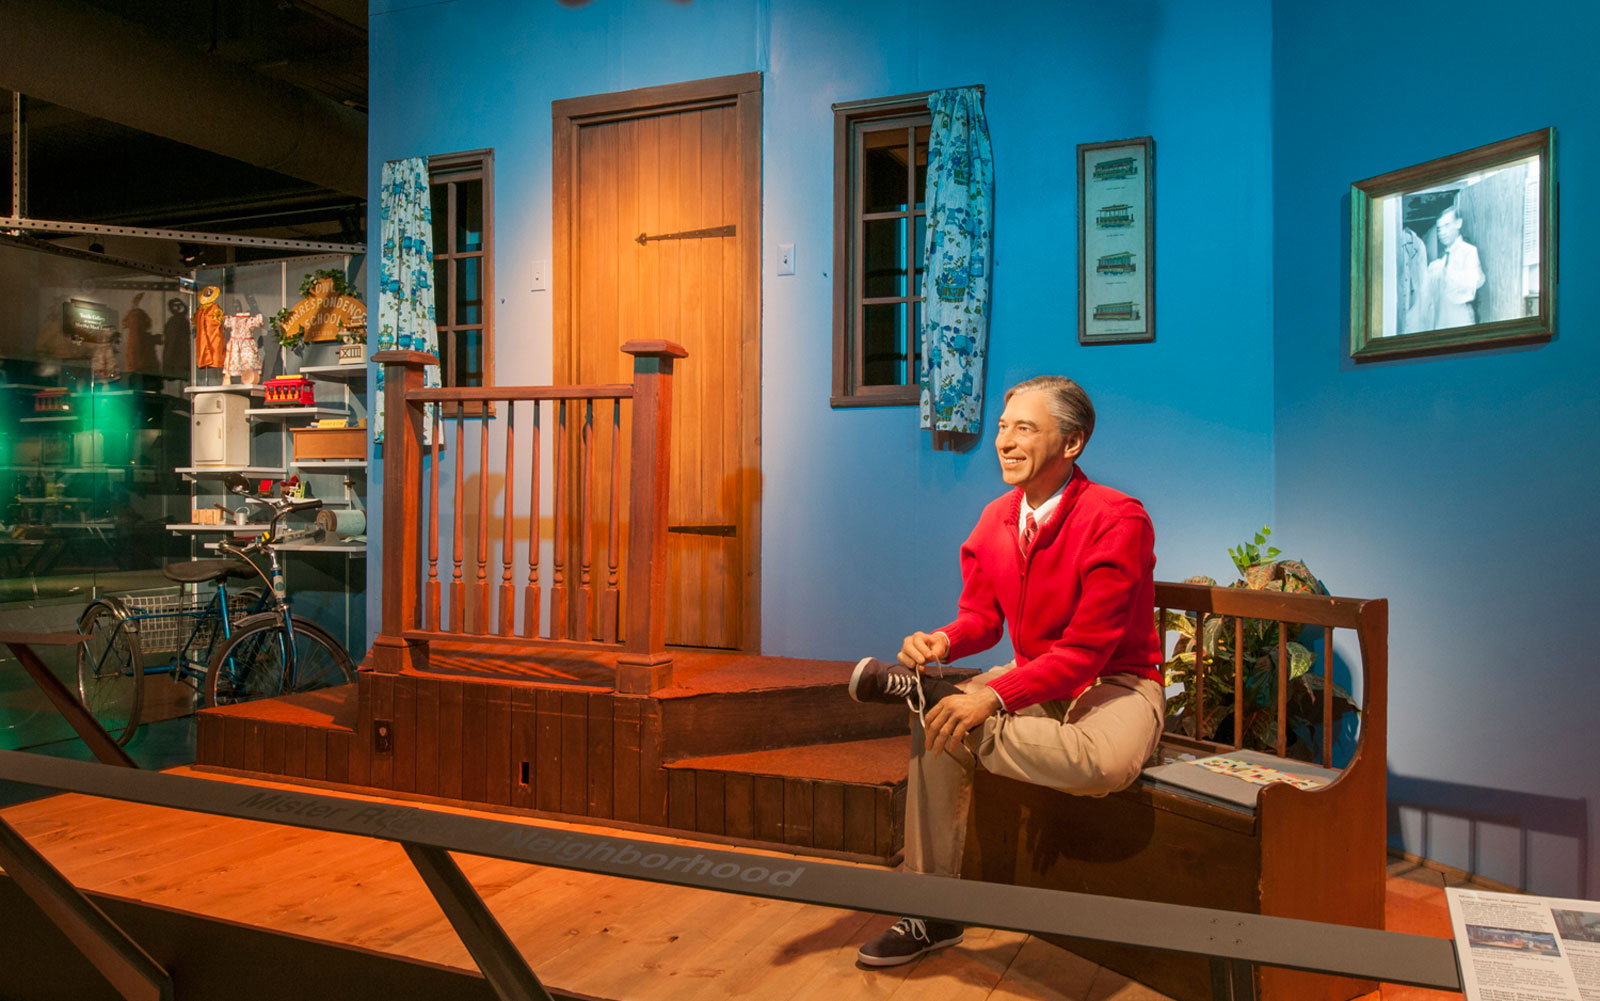 The Mister Rogers Trail in Pennsylvania Takes You to the Sights That Inspired His Iconic Show